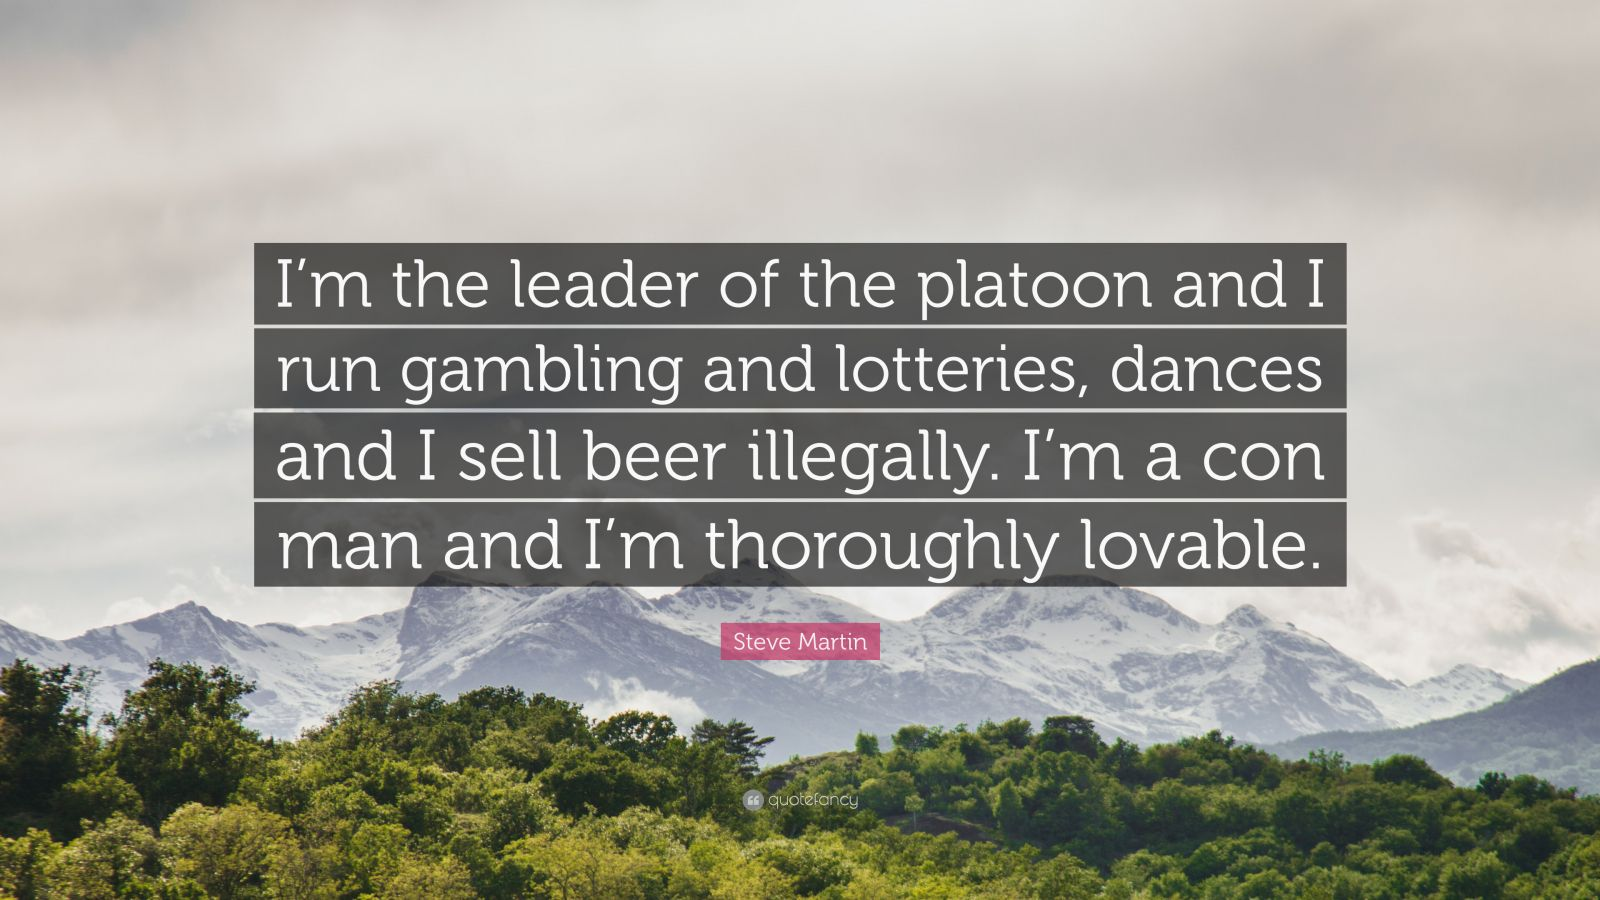 """Steve Martin Quote: """"I'm the leader of the platoon and I run gambling and lotteries, dances and I sell beer illegally. I'm a con man and I'm thoroughly lovable."""""""